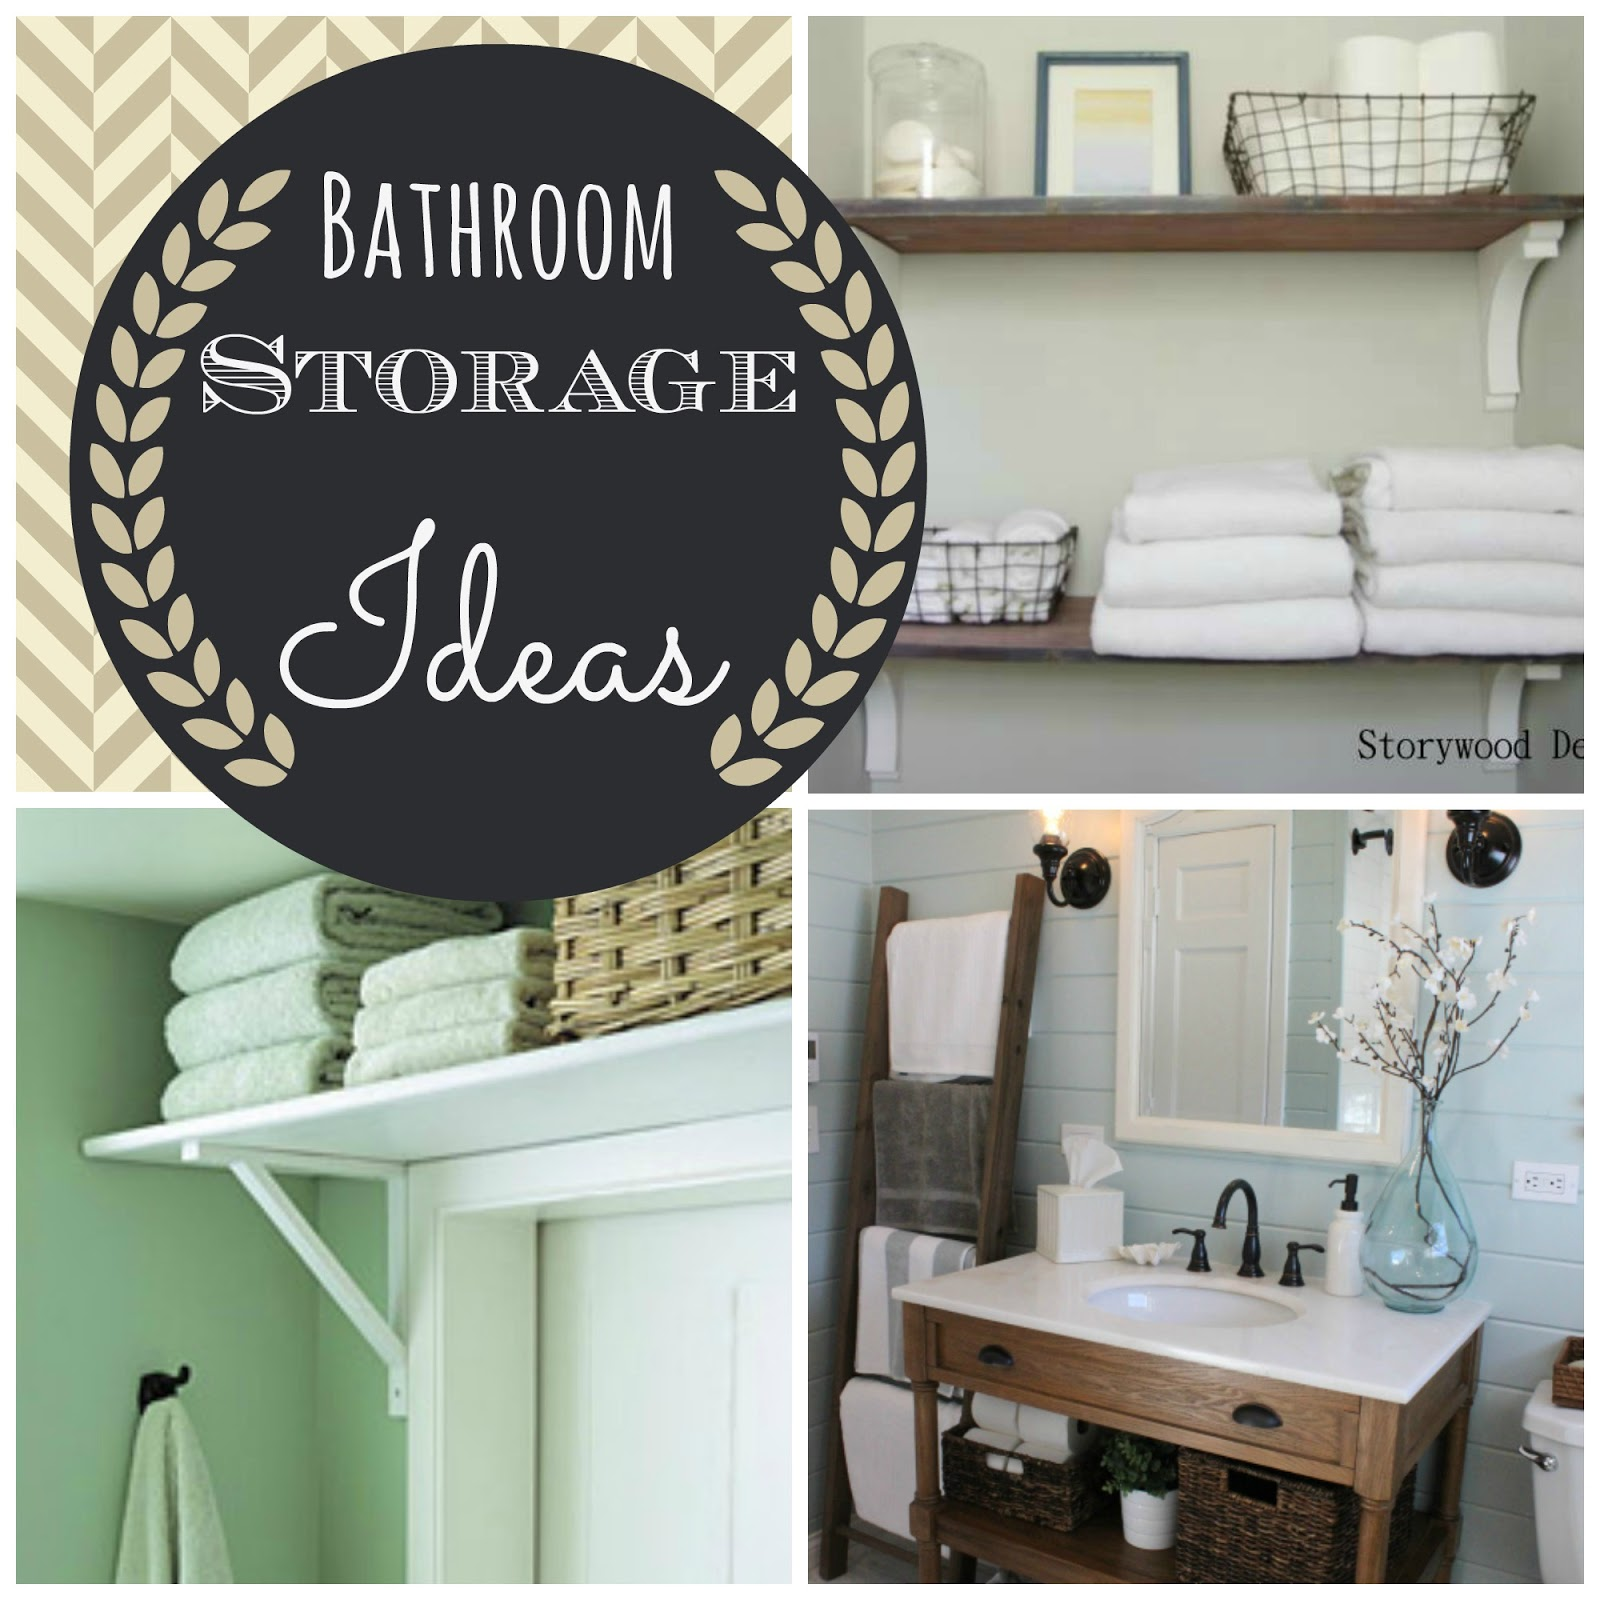 Couches And Cupcakes: Inspiration: Small Bathroom Storage